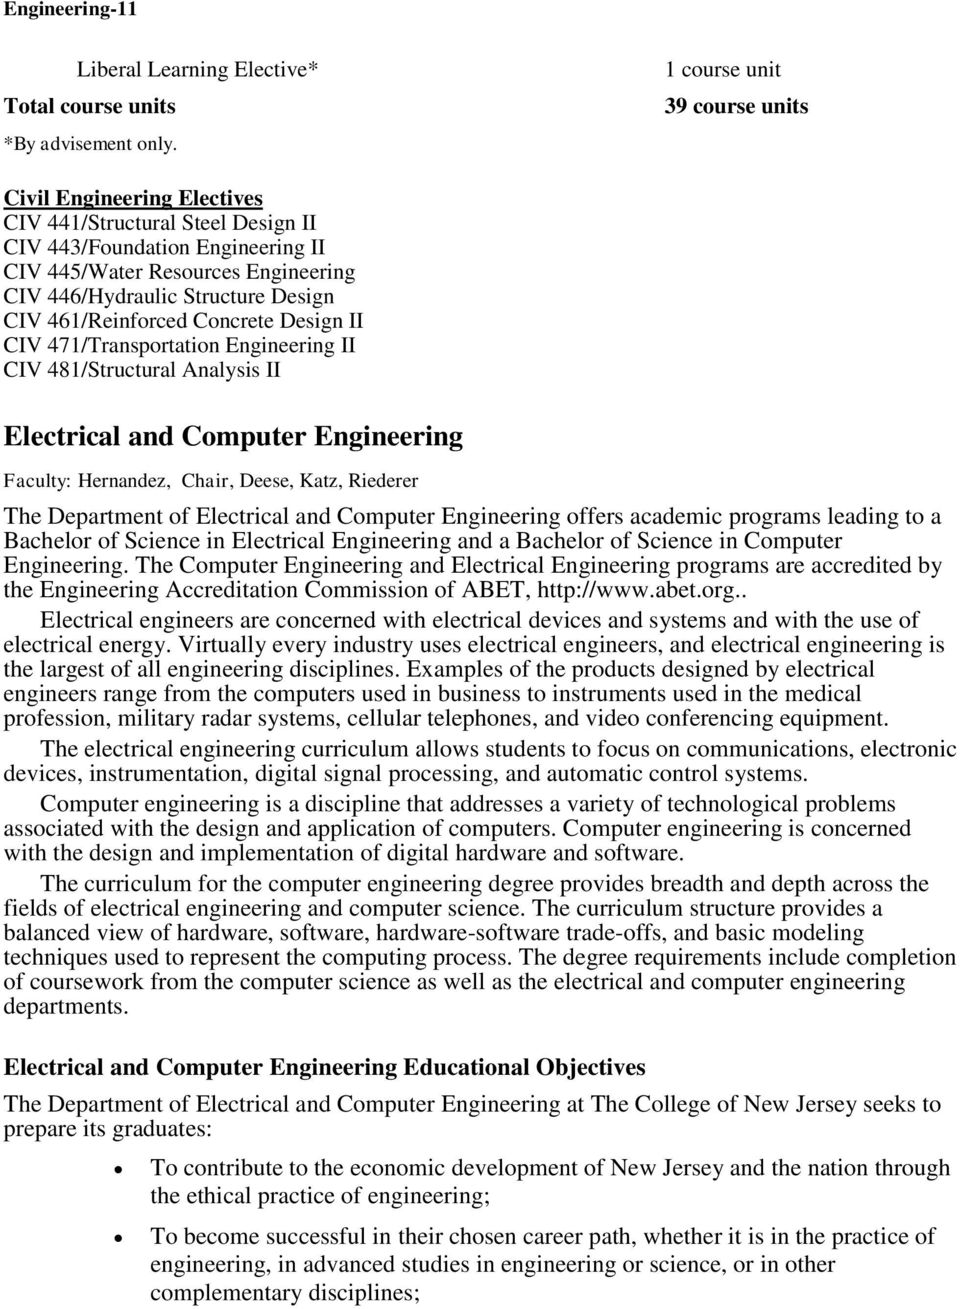 461/Reinforced Concrete Design II CIV 471/Transportation Engineering II CIV 481/Structural Analysis II Electrical and Computer Engineering Faculty: Hernandez, Chair, Deese, Katz, Riederer The